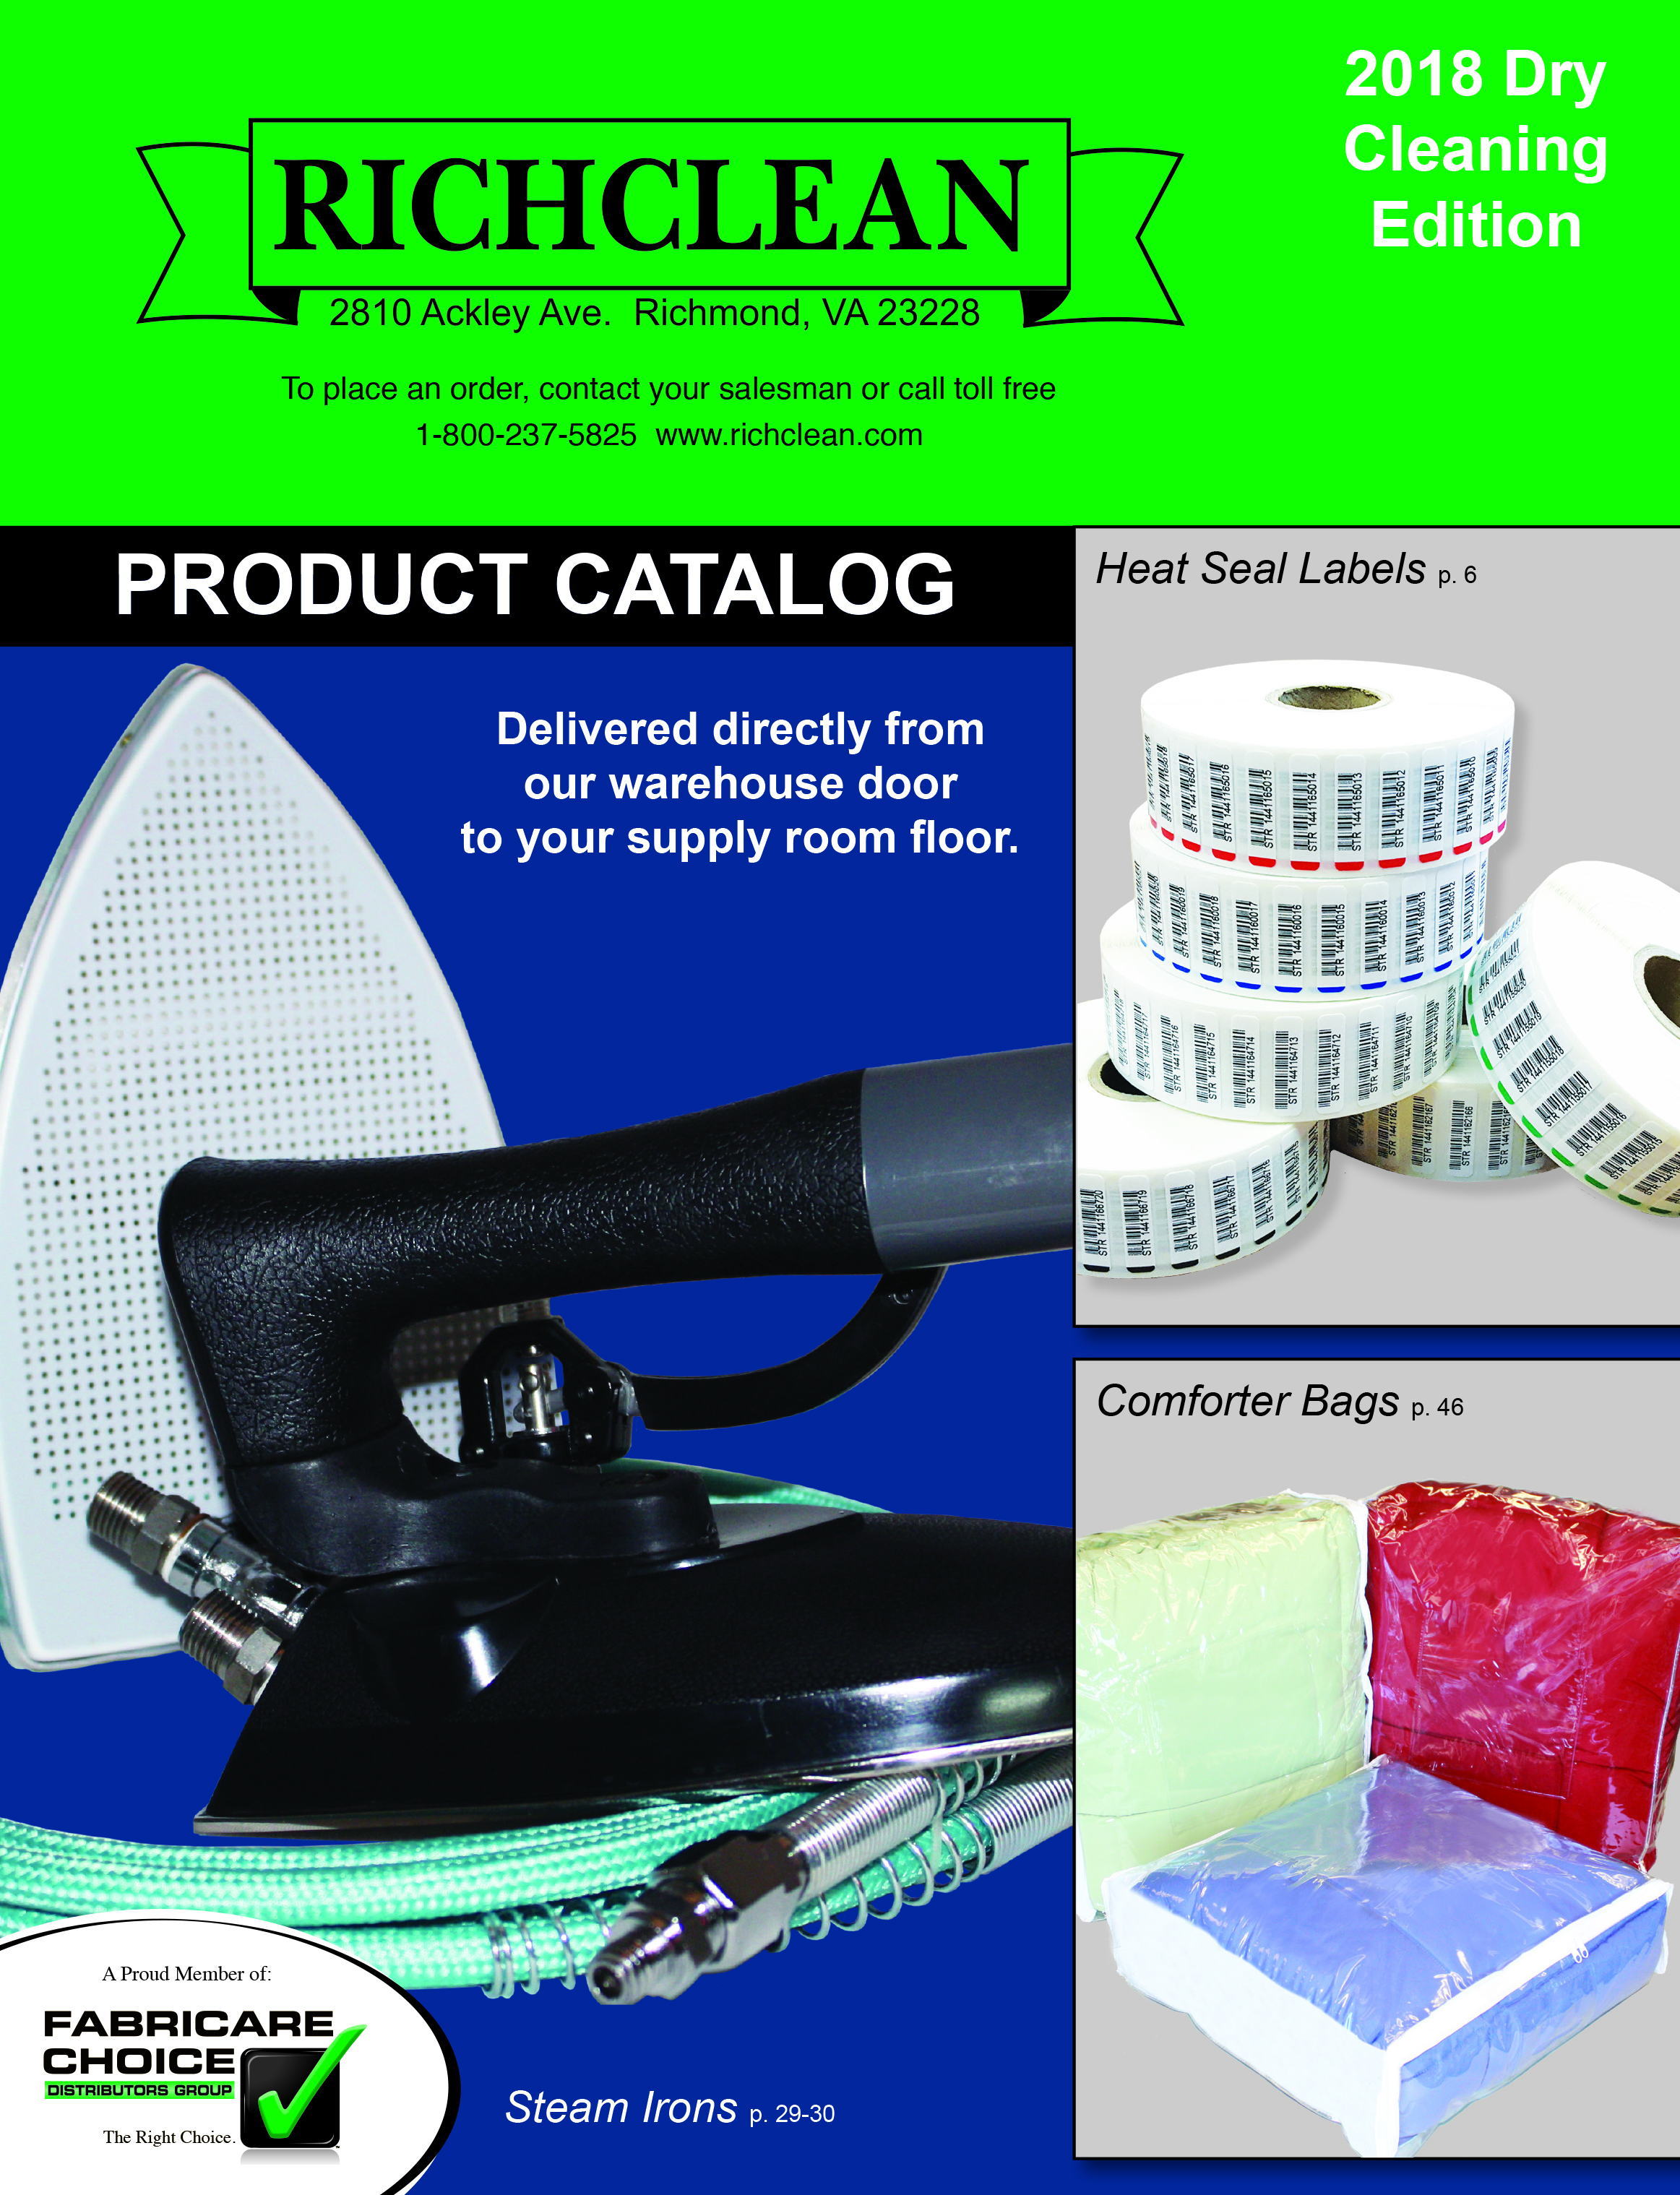 Richclean On-Line Catalogue